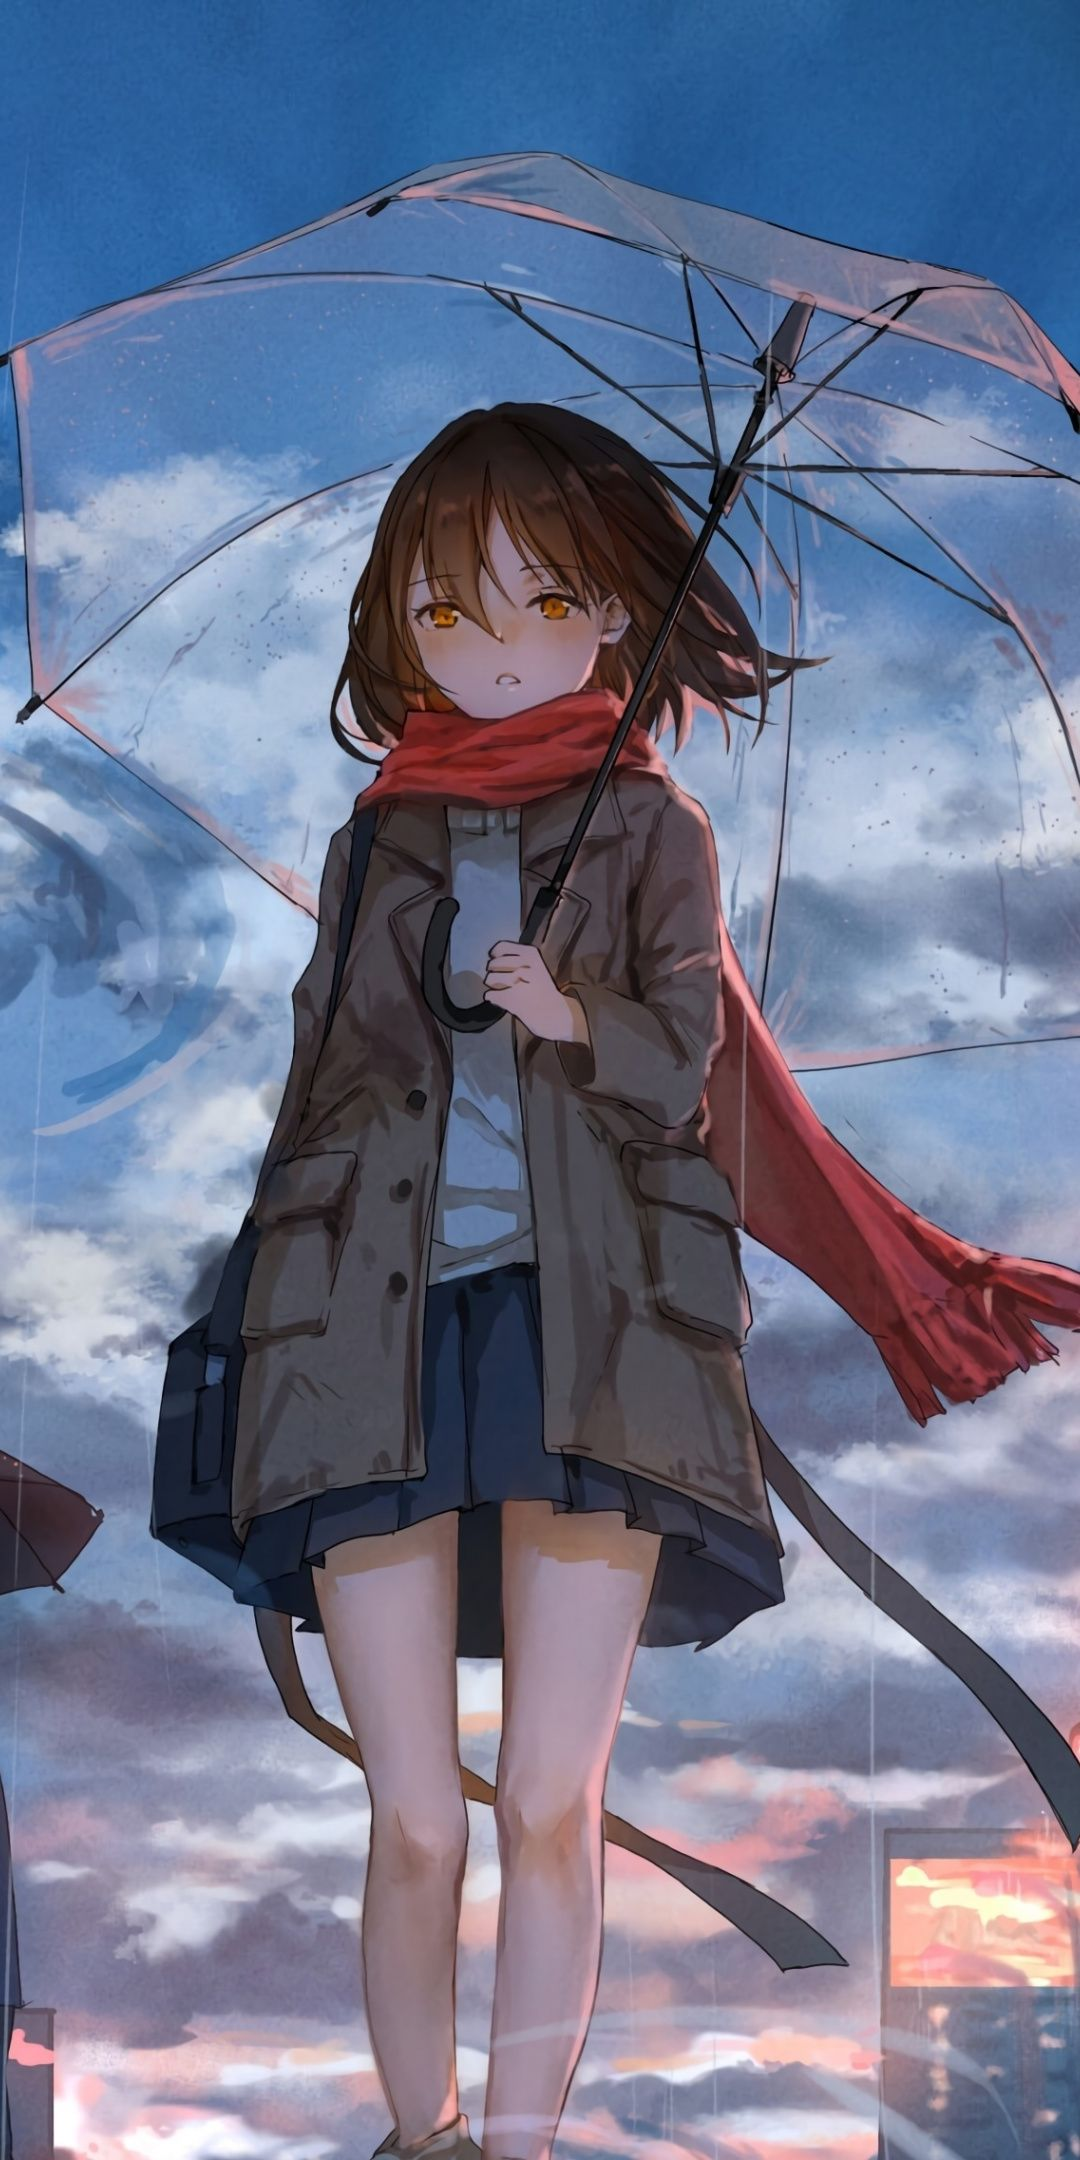 1080x2160 Girl With Umbrella Rain Anime Original Wallpaper